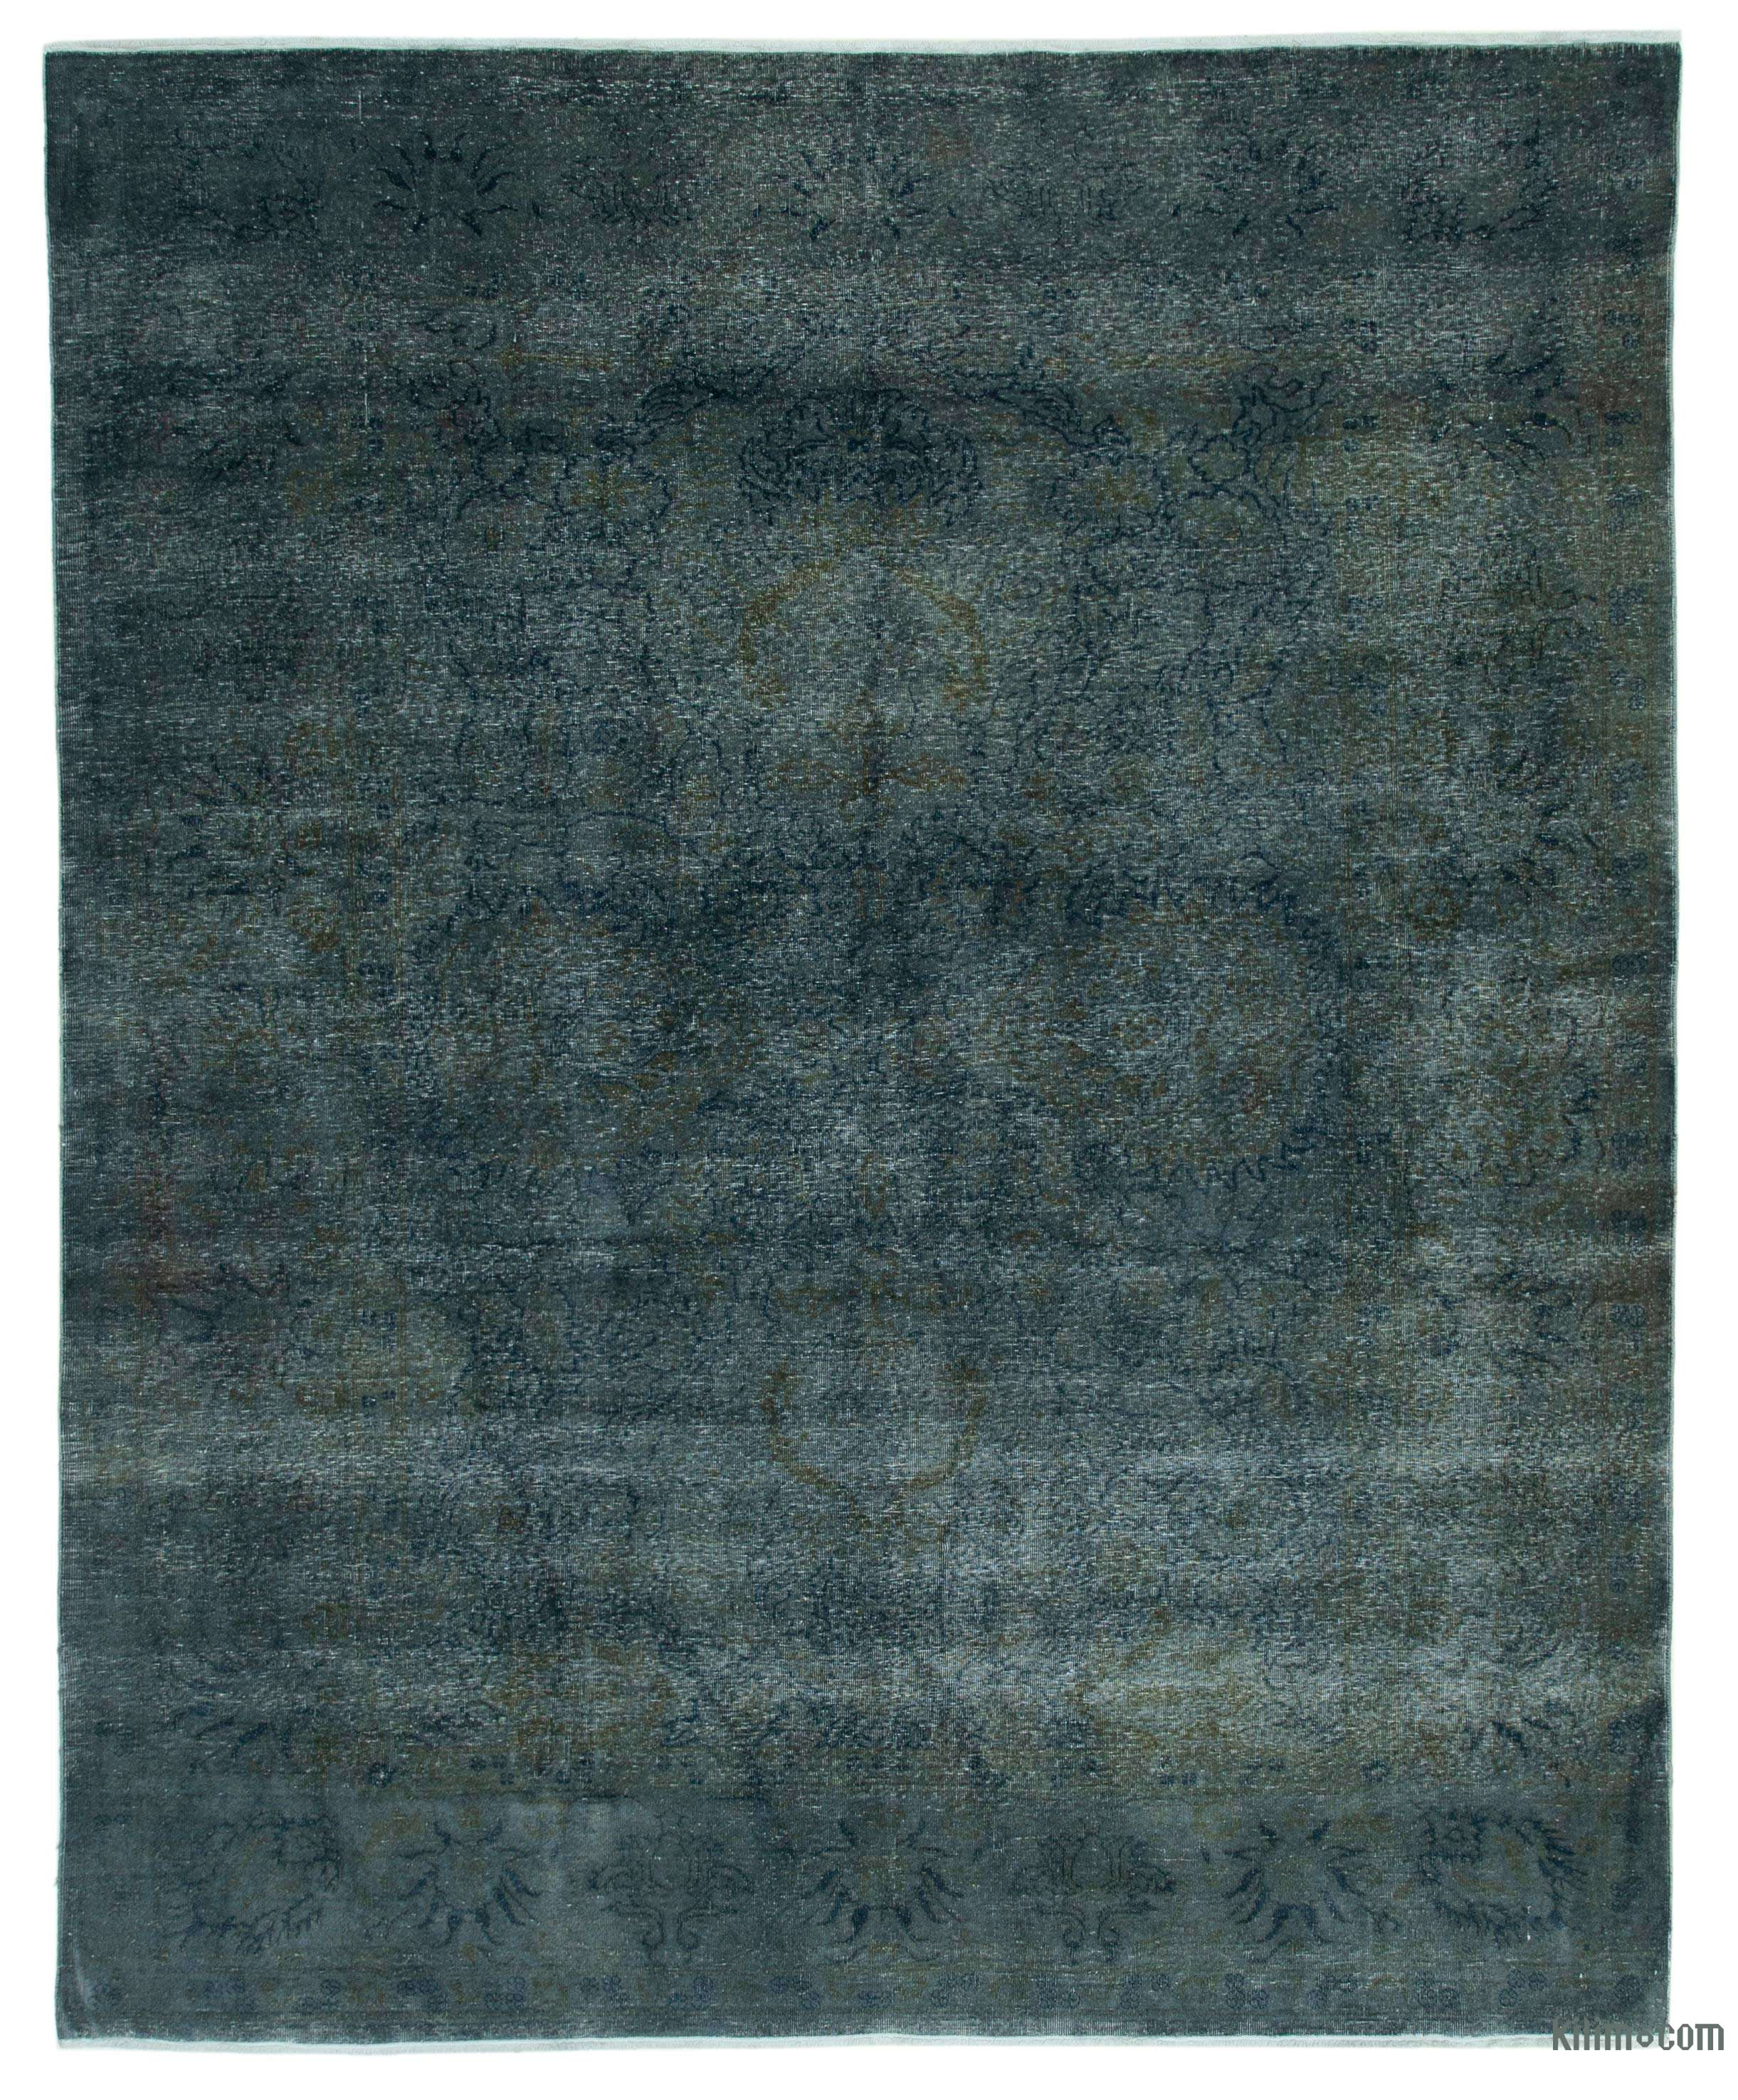 Grey Overdyed Vintage Hand Knotted Oriental Rug 8 X 9 10 96 In X 118 In